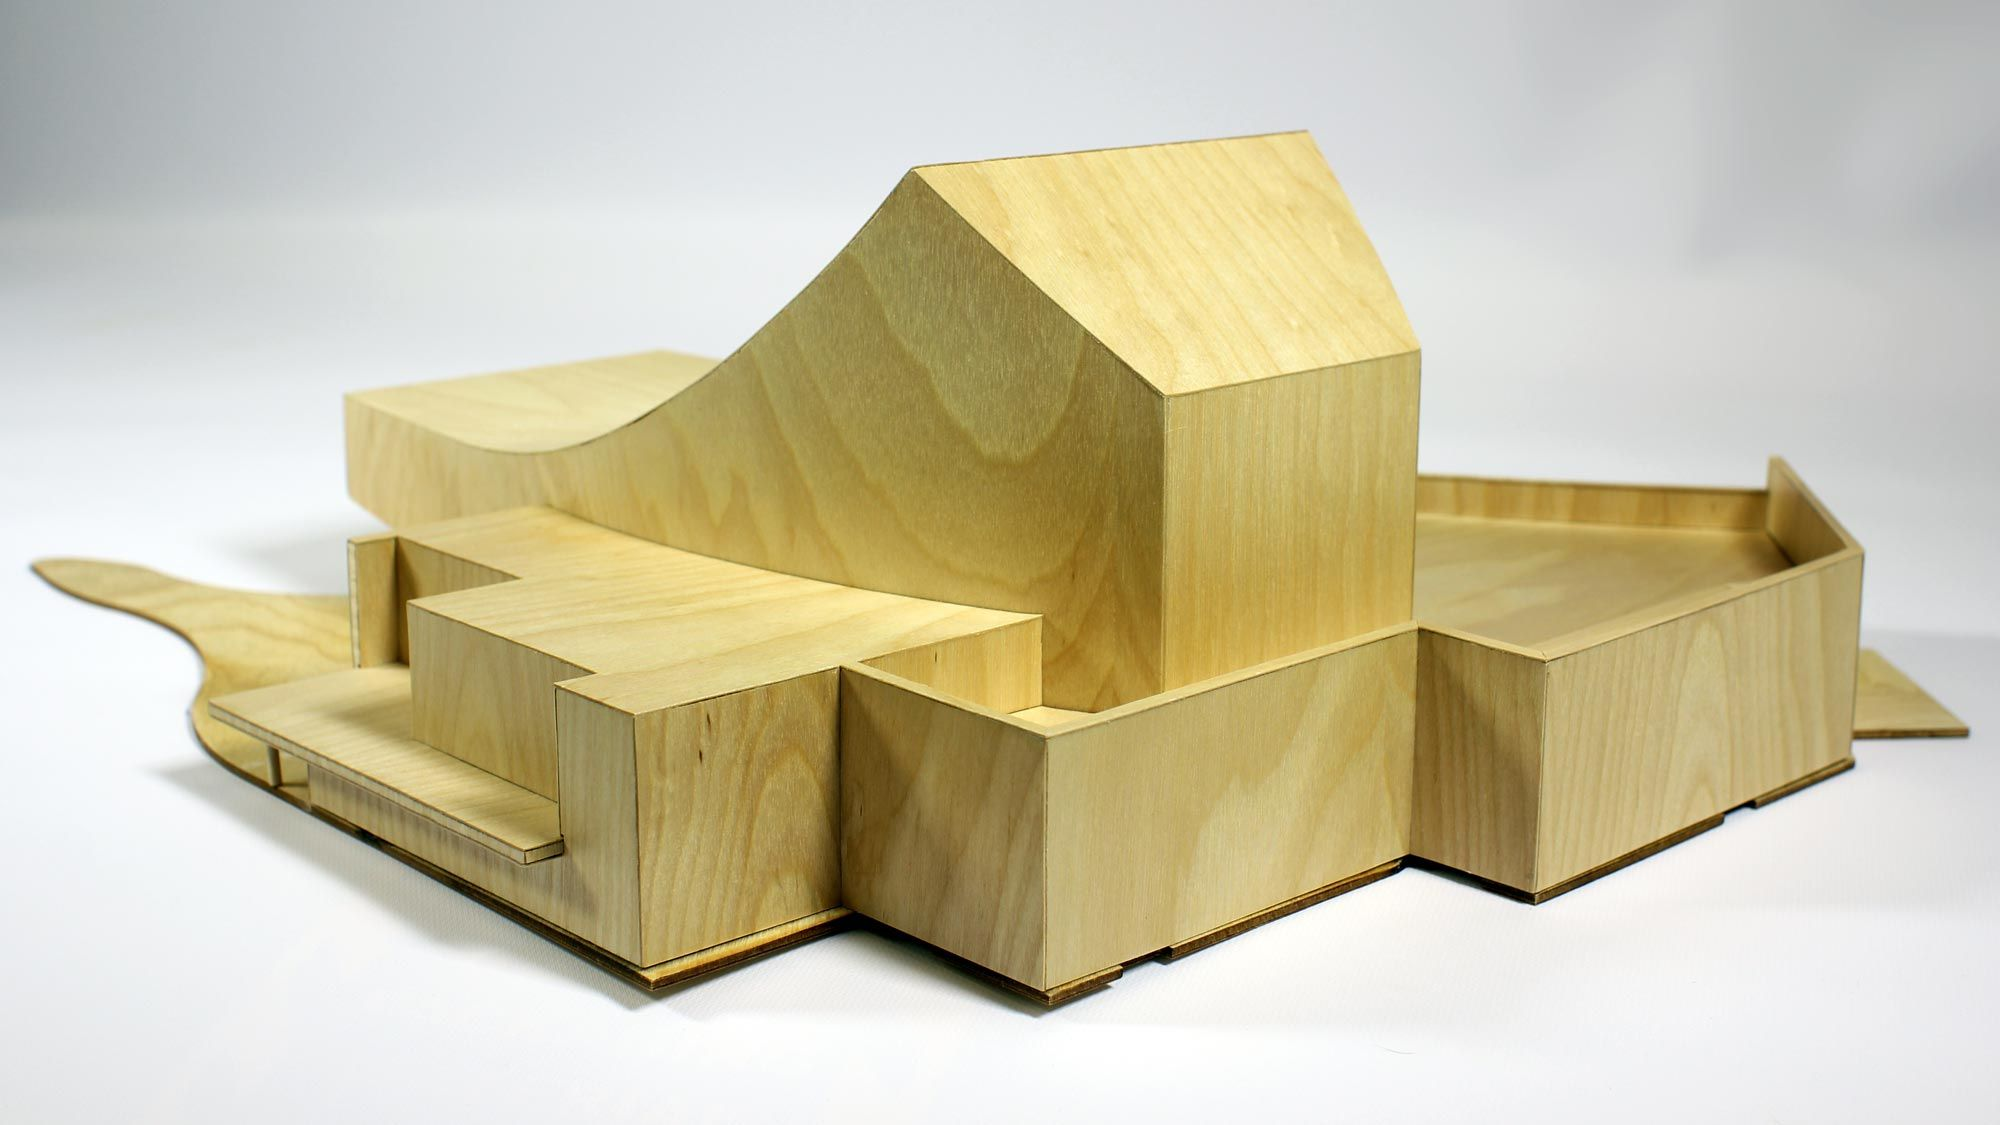 image result for wooden architecture model materials pinterest